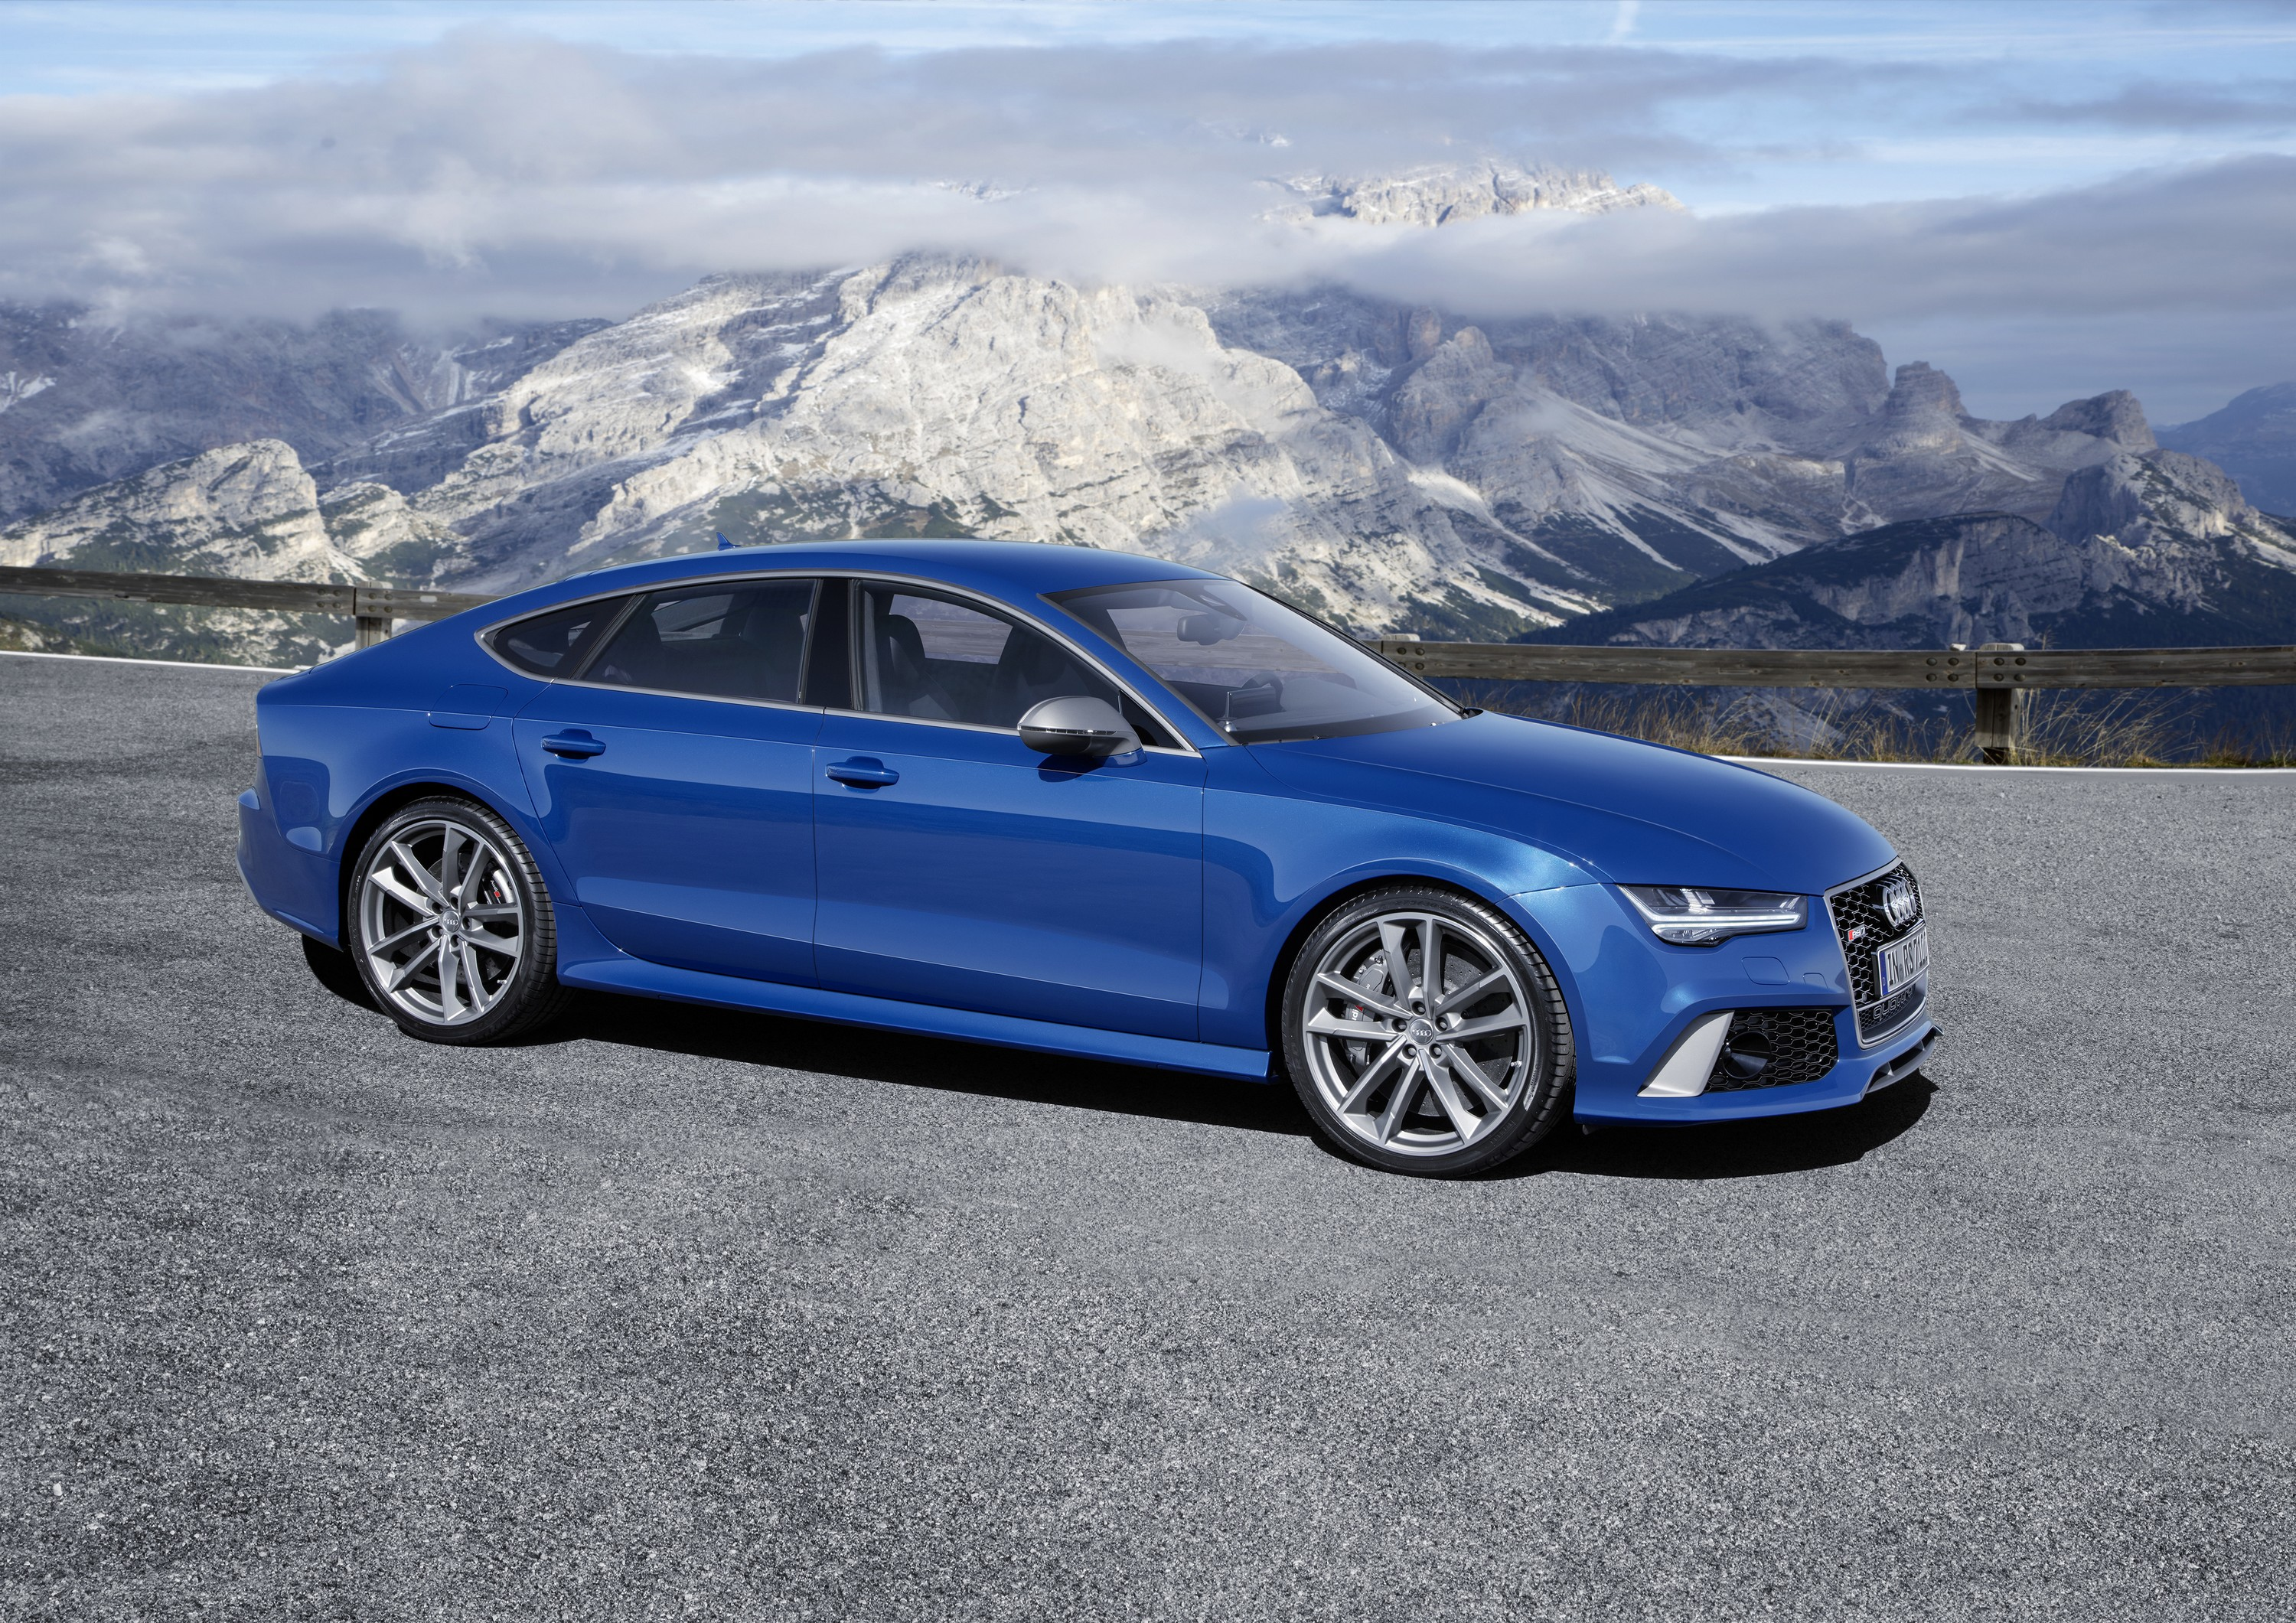 Audi Rs7 Performance Model Coming To Canada Autos Ca